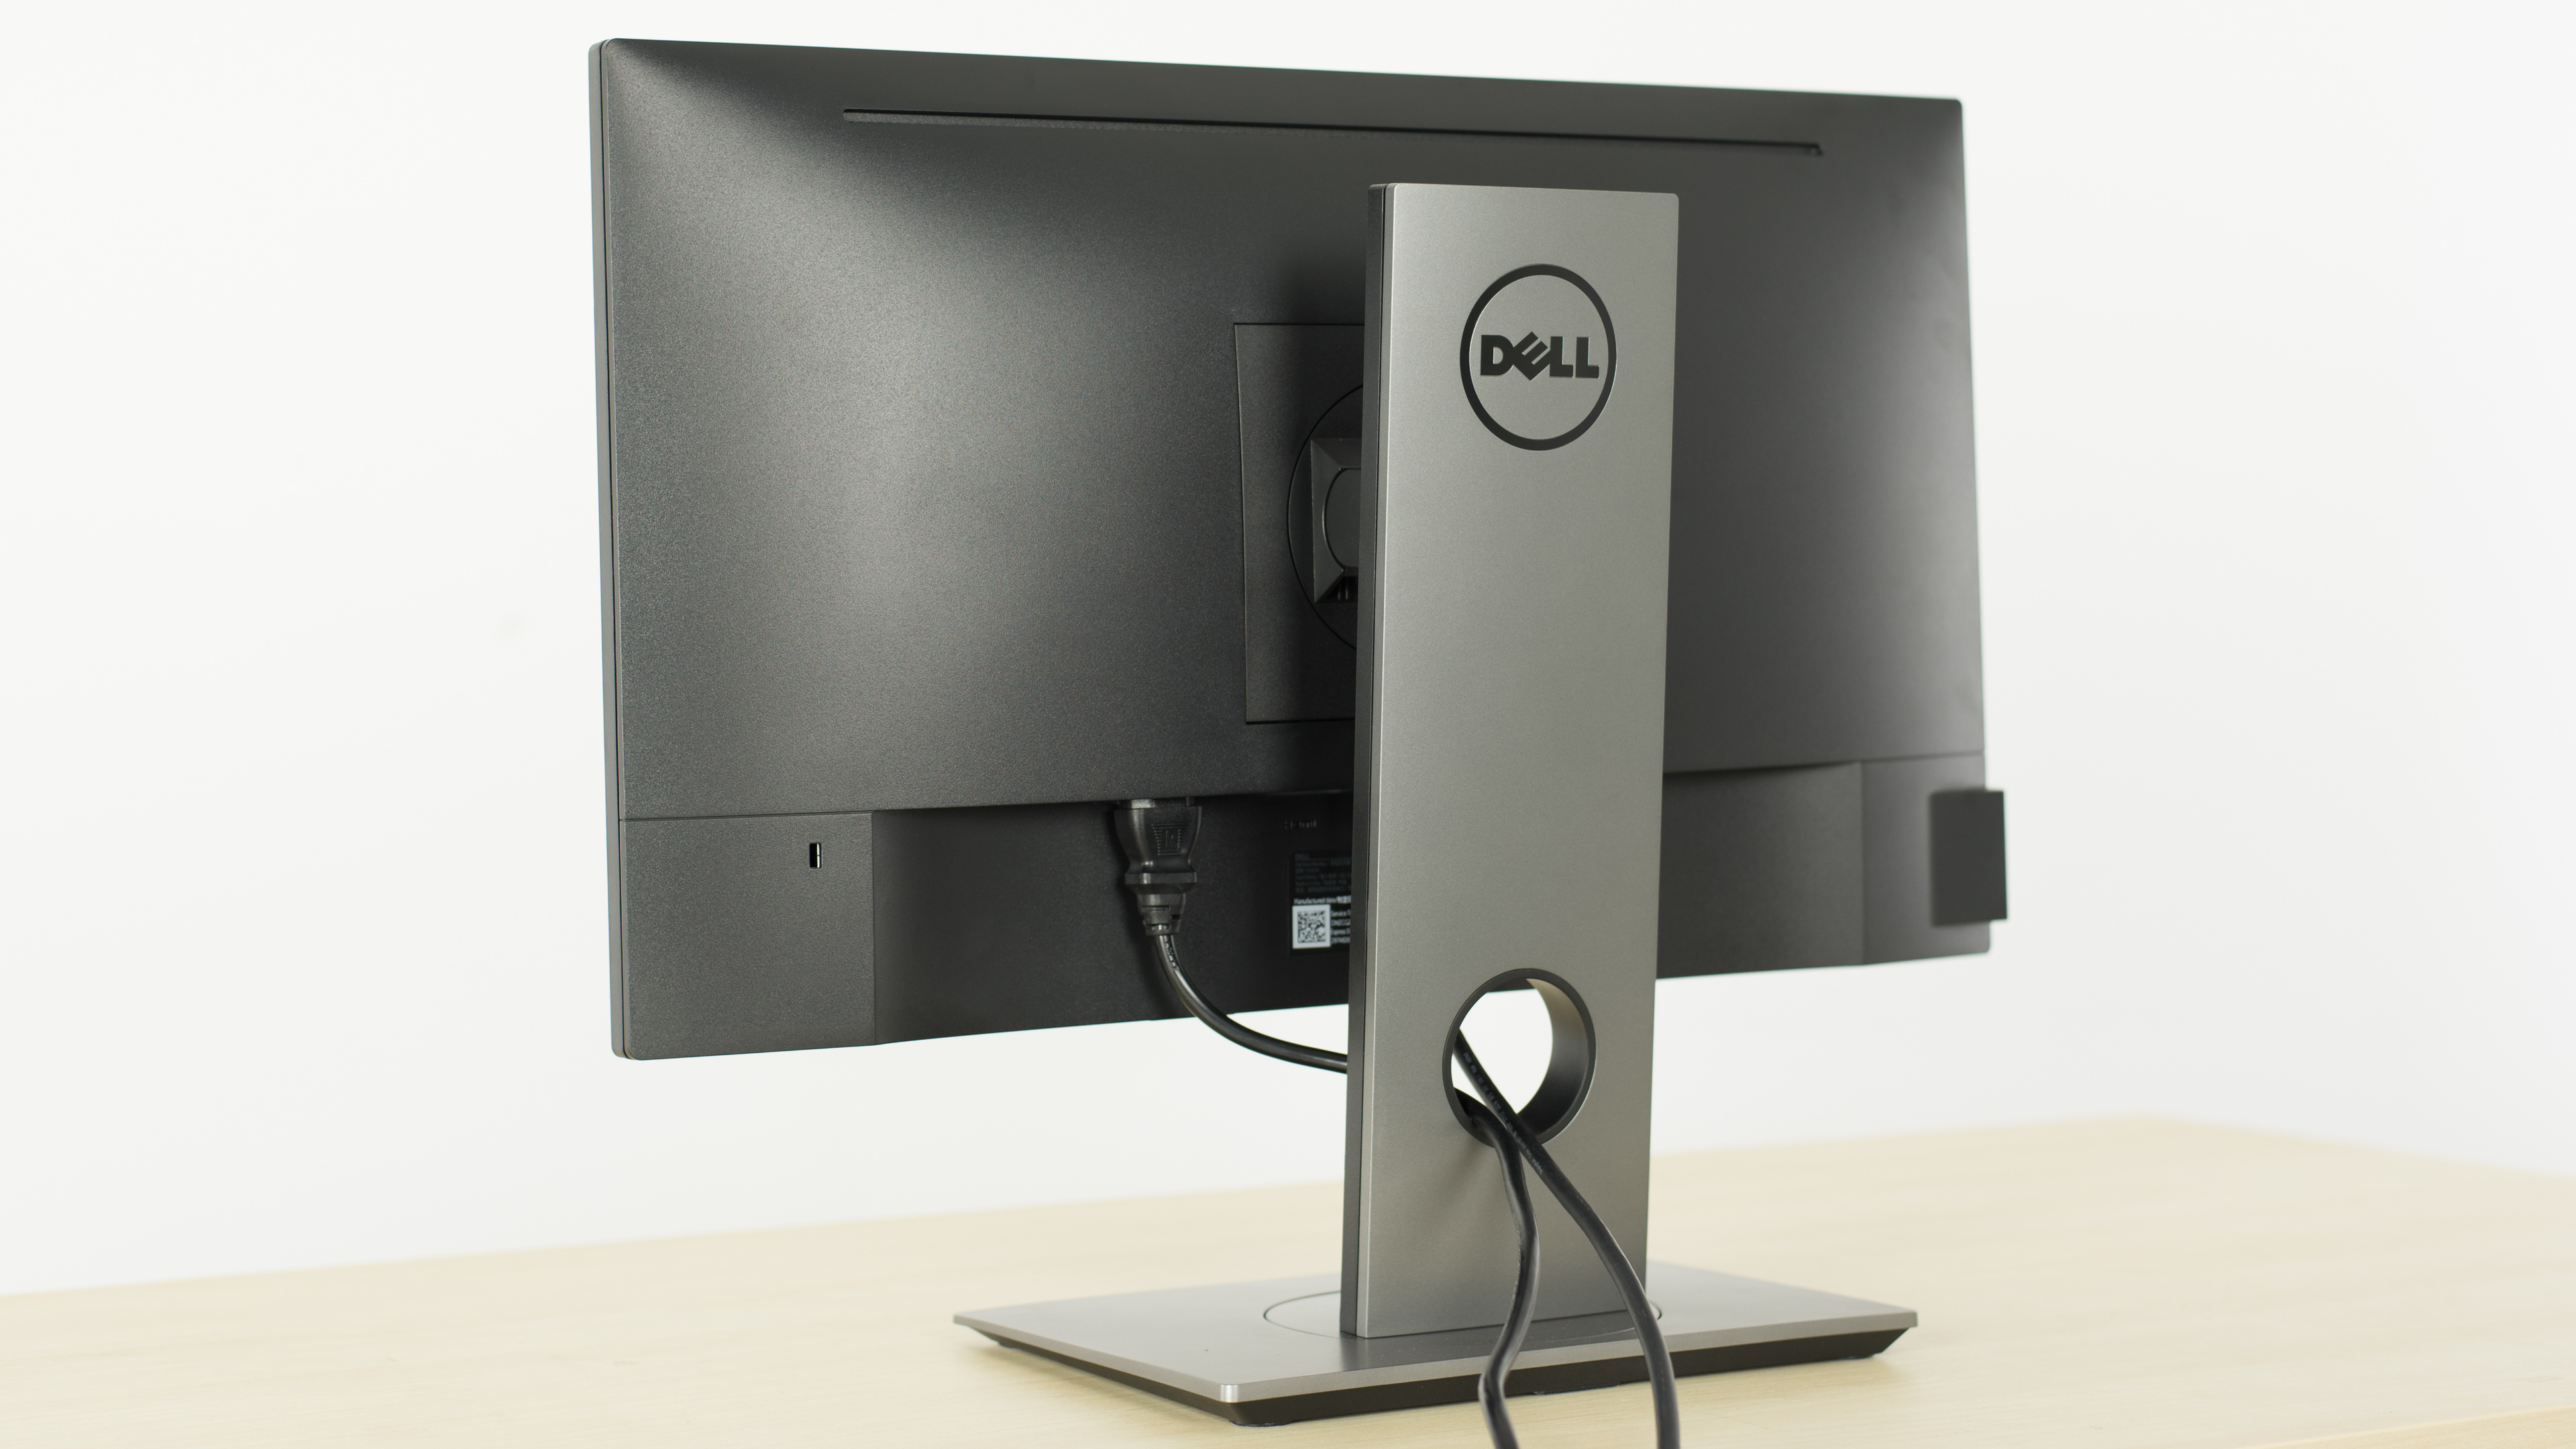 Dell P2217h Review Rtings Com